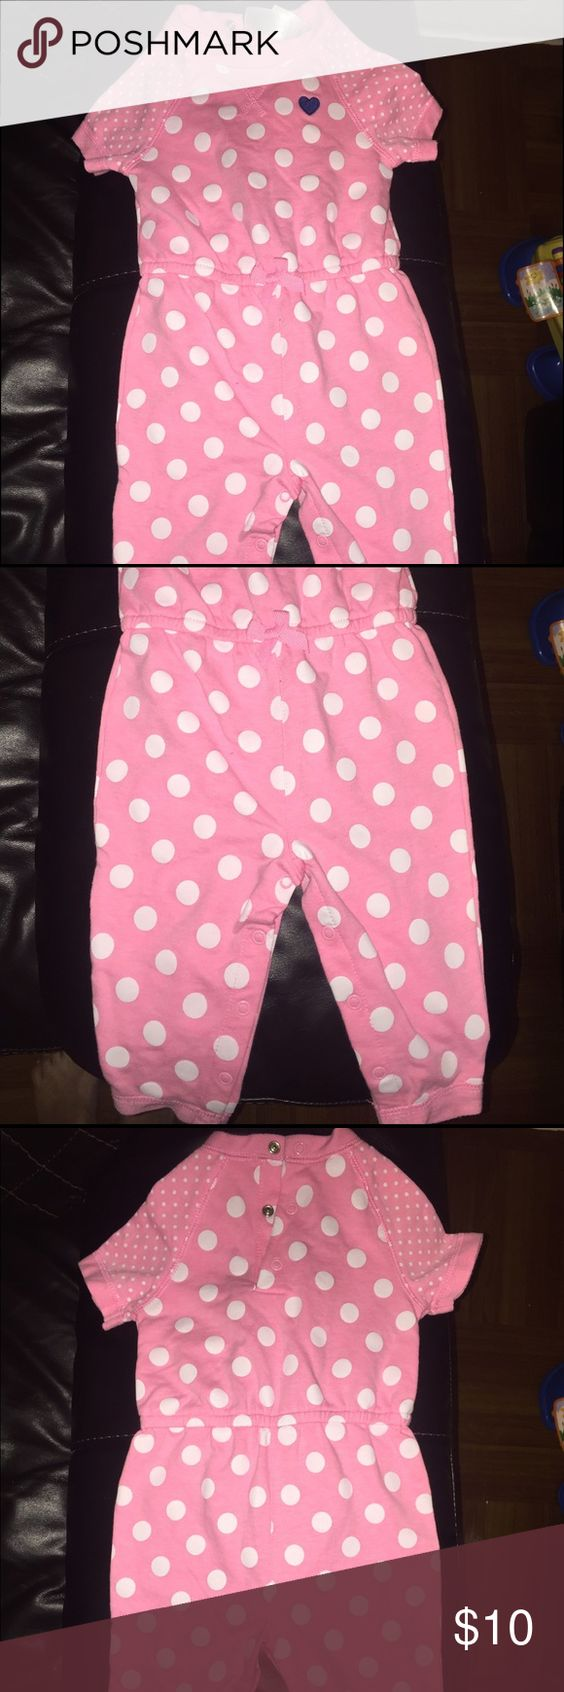 Carters one piece suit Brand new without tags never worn. Carter's One Pieces Bodysuits